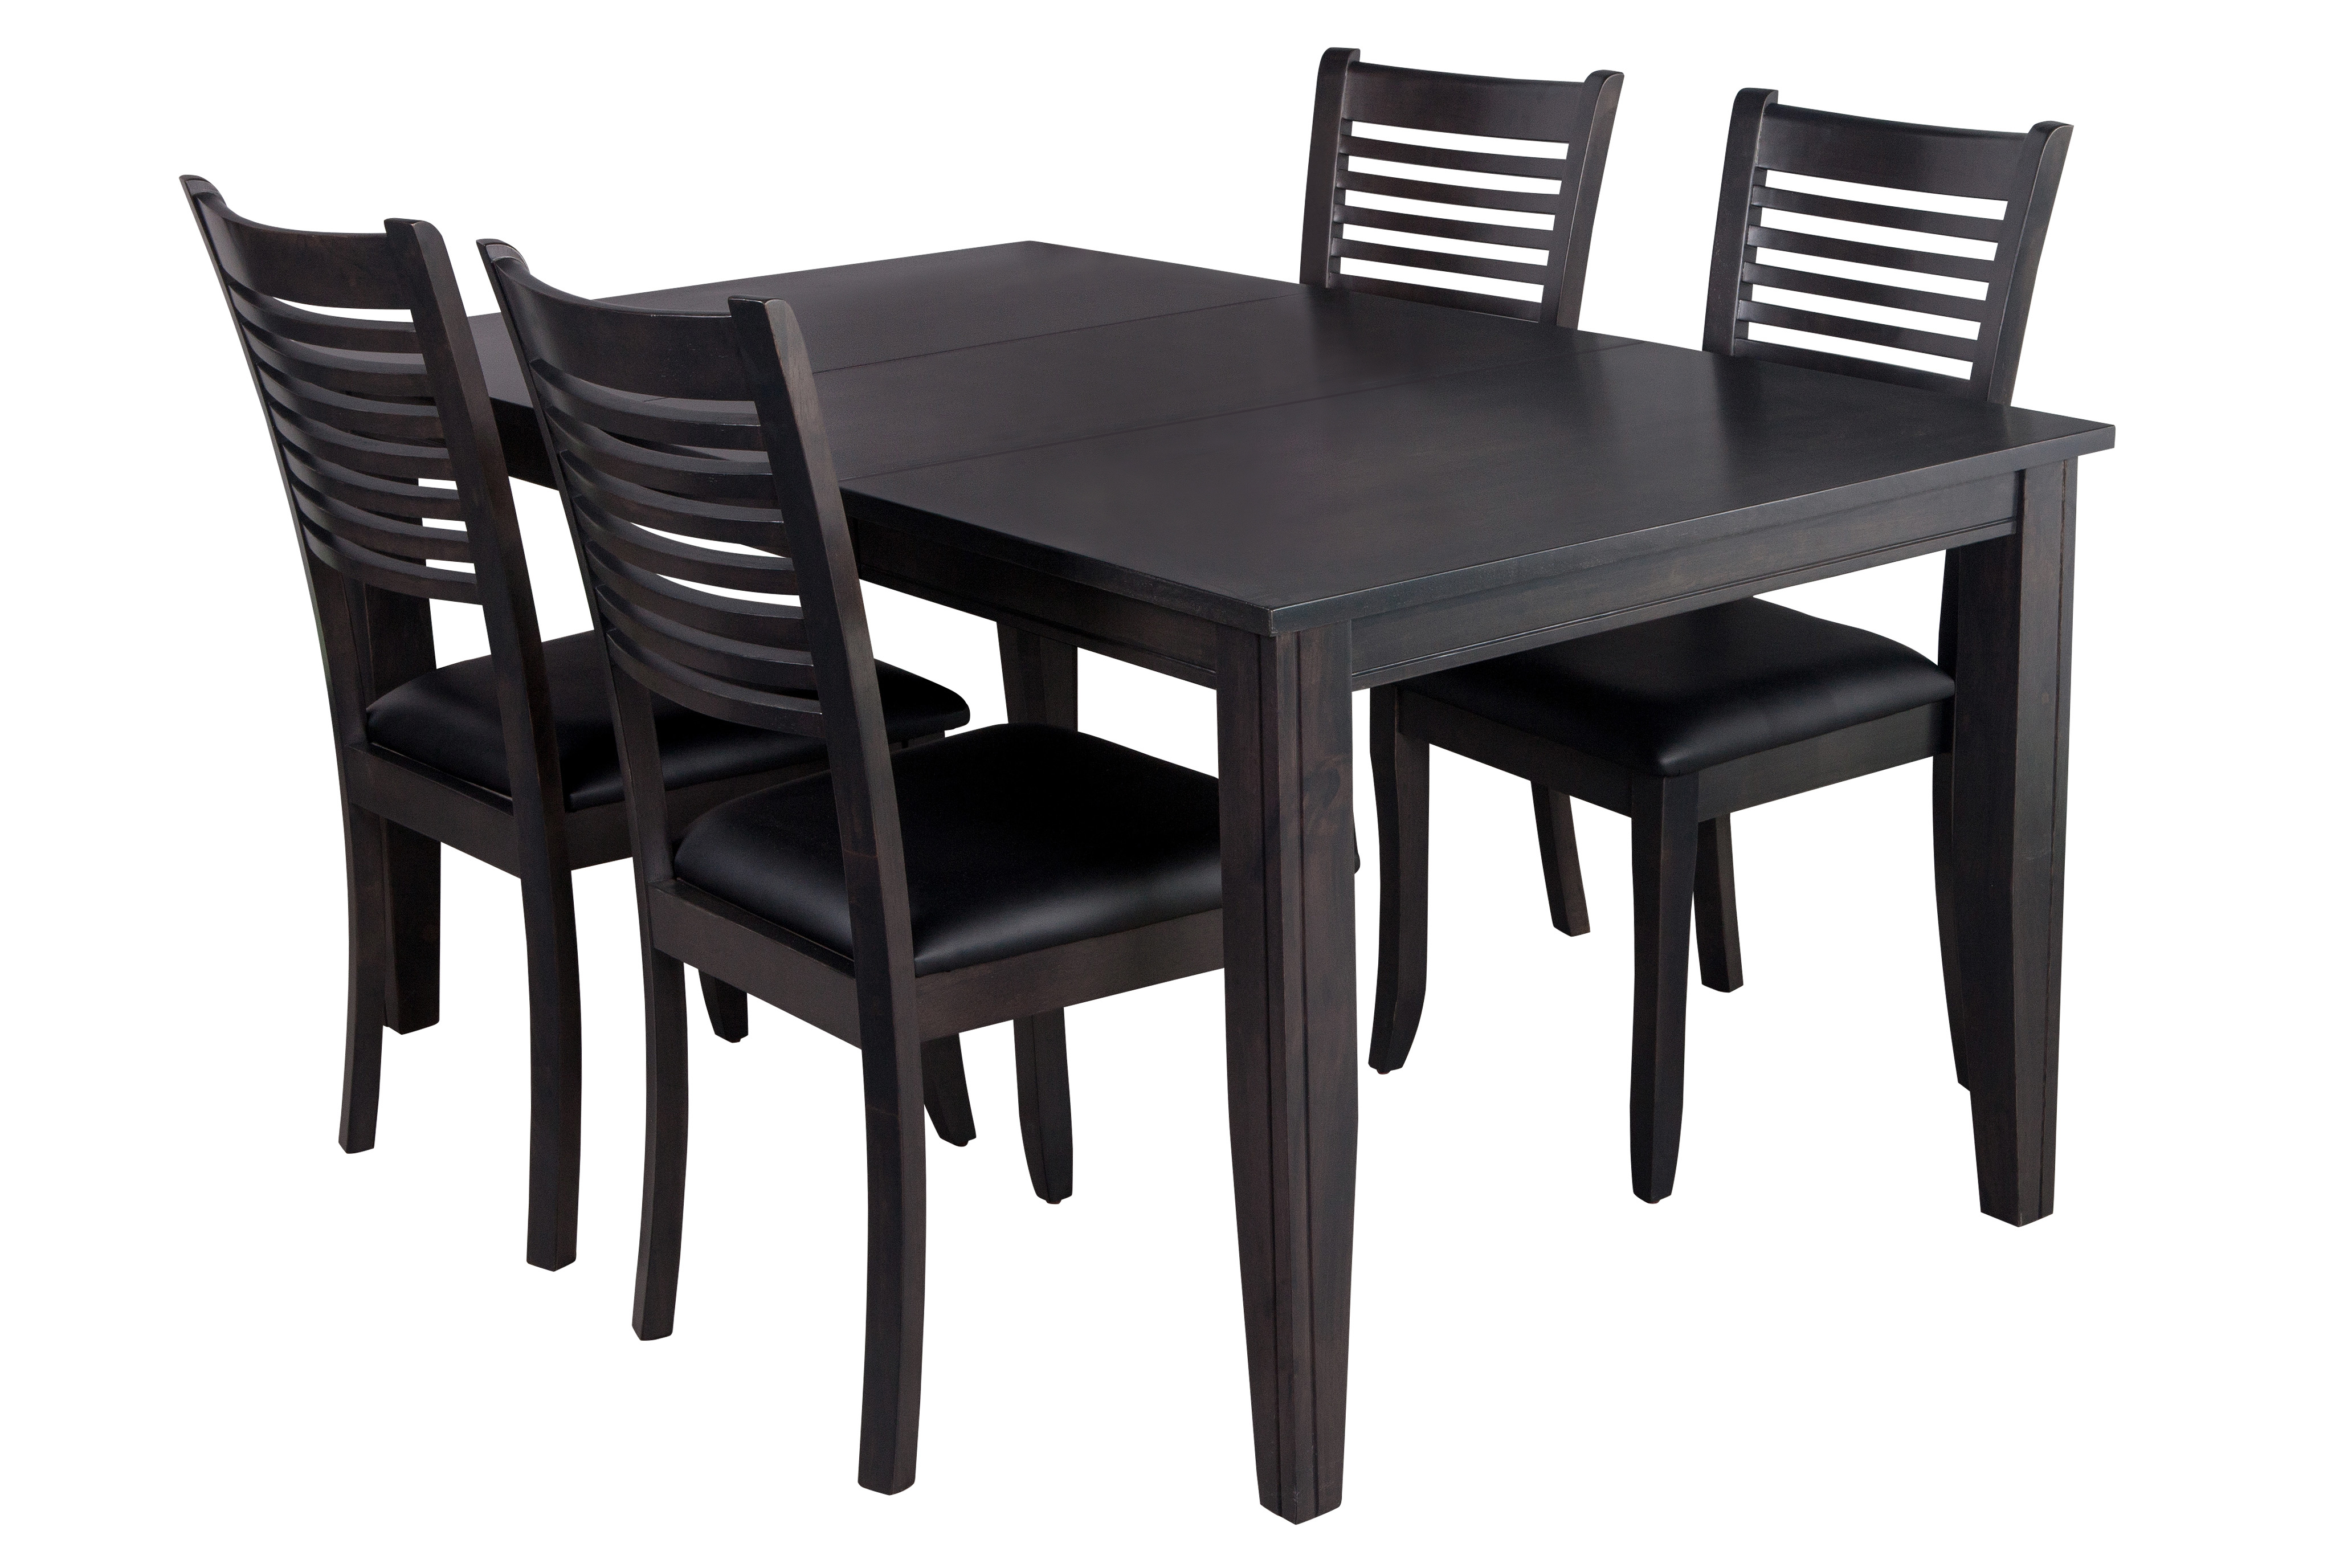 Famous Ttp Furnish Pertaining To Adan 5 Piece Solid Wood Dining Sets (Set Of 5) (View 13 of 25)